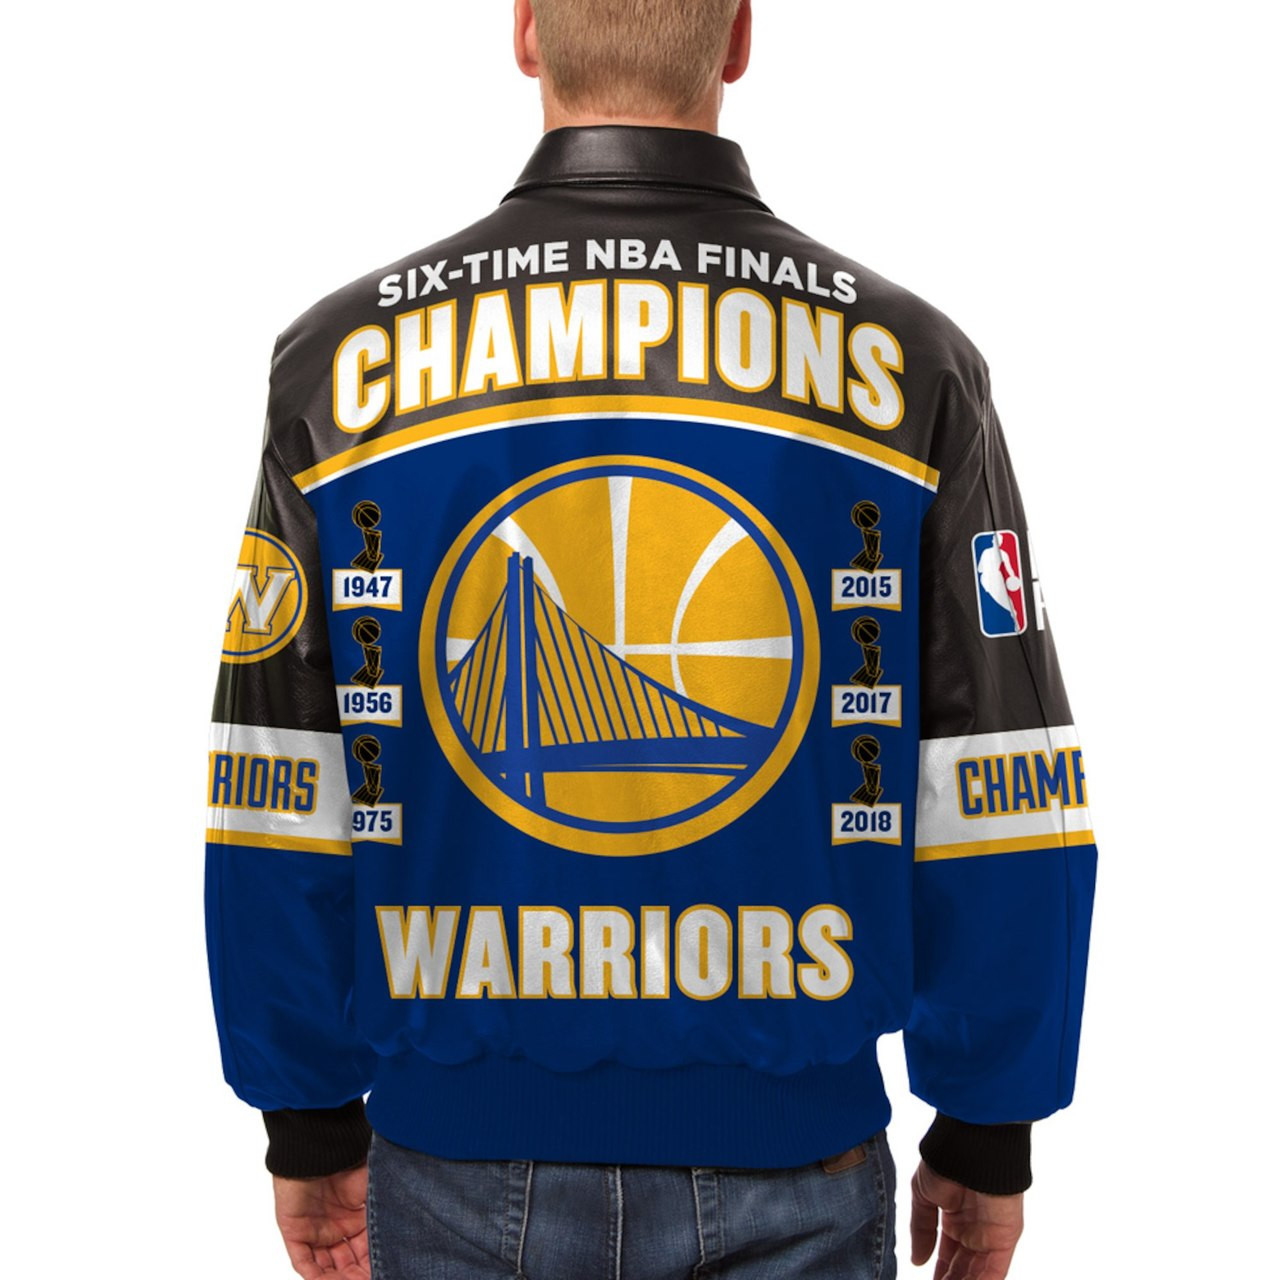 Golden State Warriors Jh Design 2018 Nba 6 Time Champions Leather Jacket With Leather Logos Black